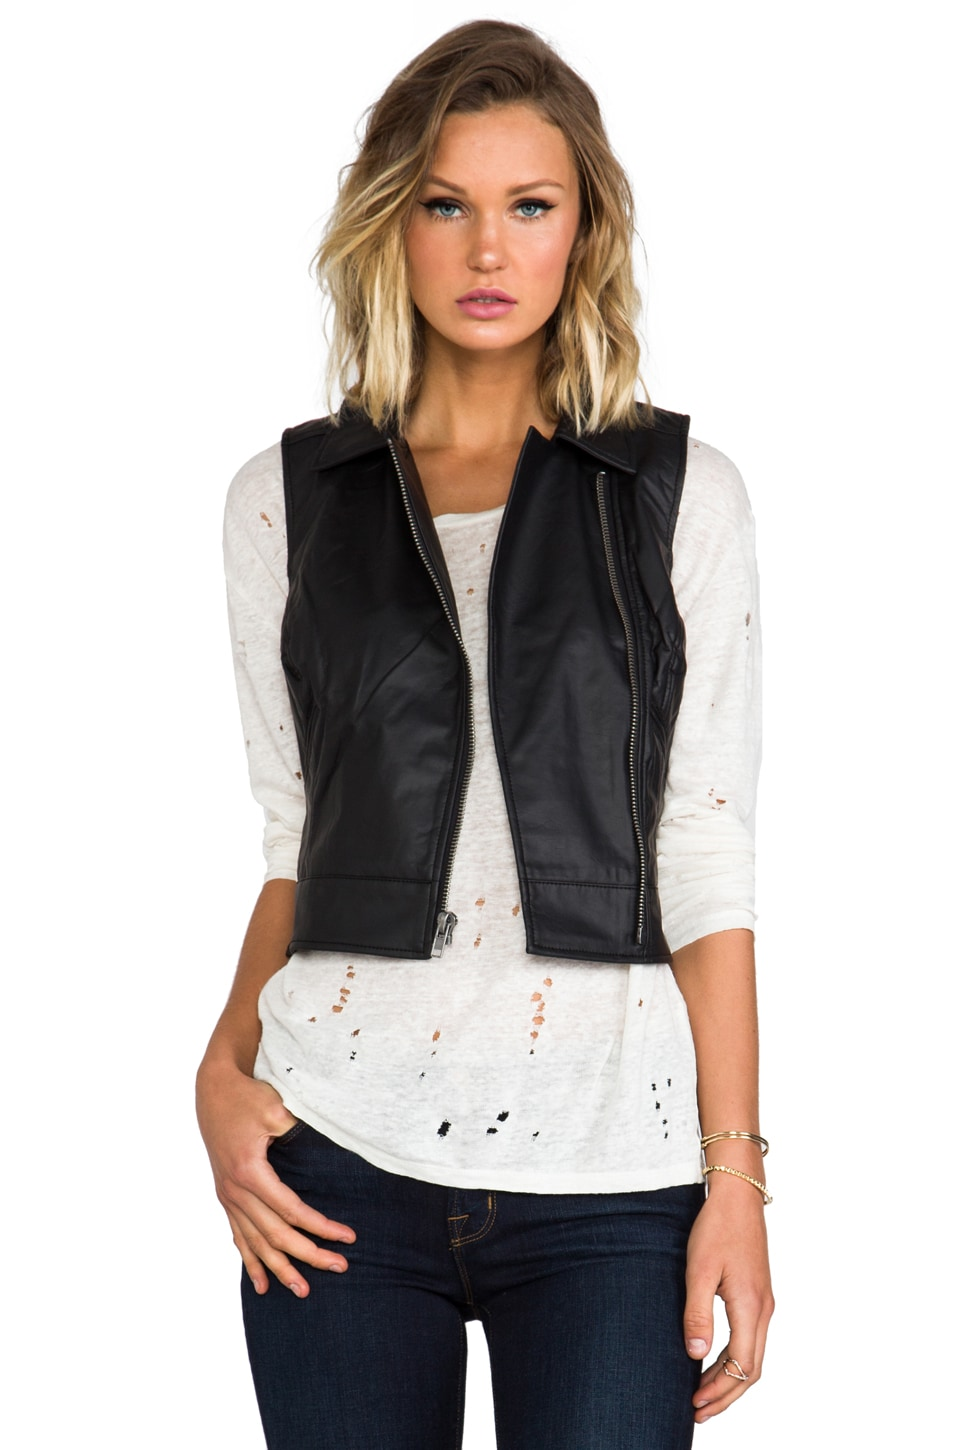 BB Dakota Virgo Textured Faux Leather Vest in Black